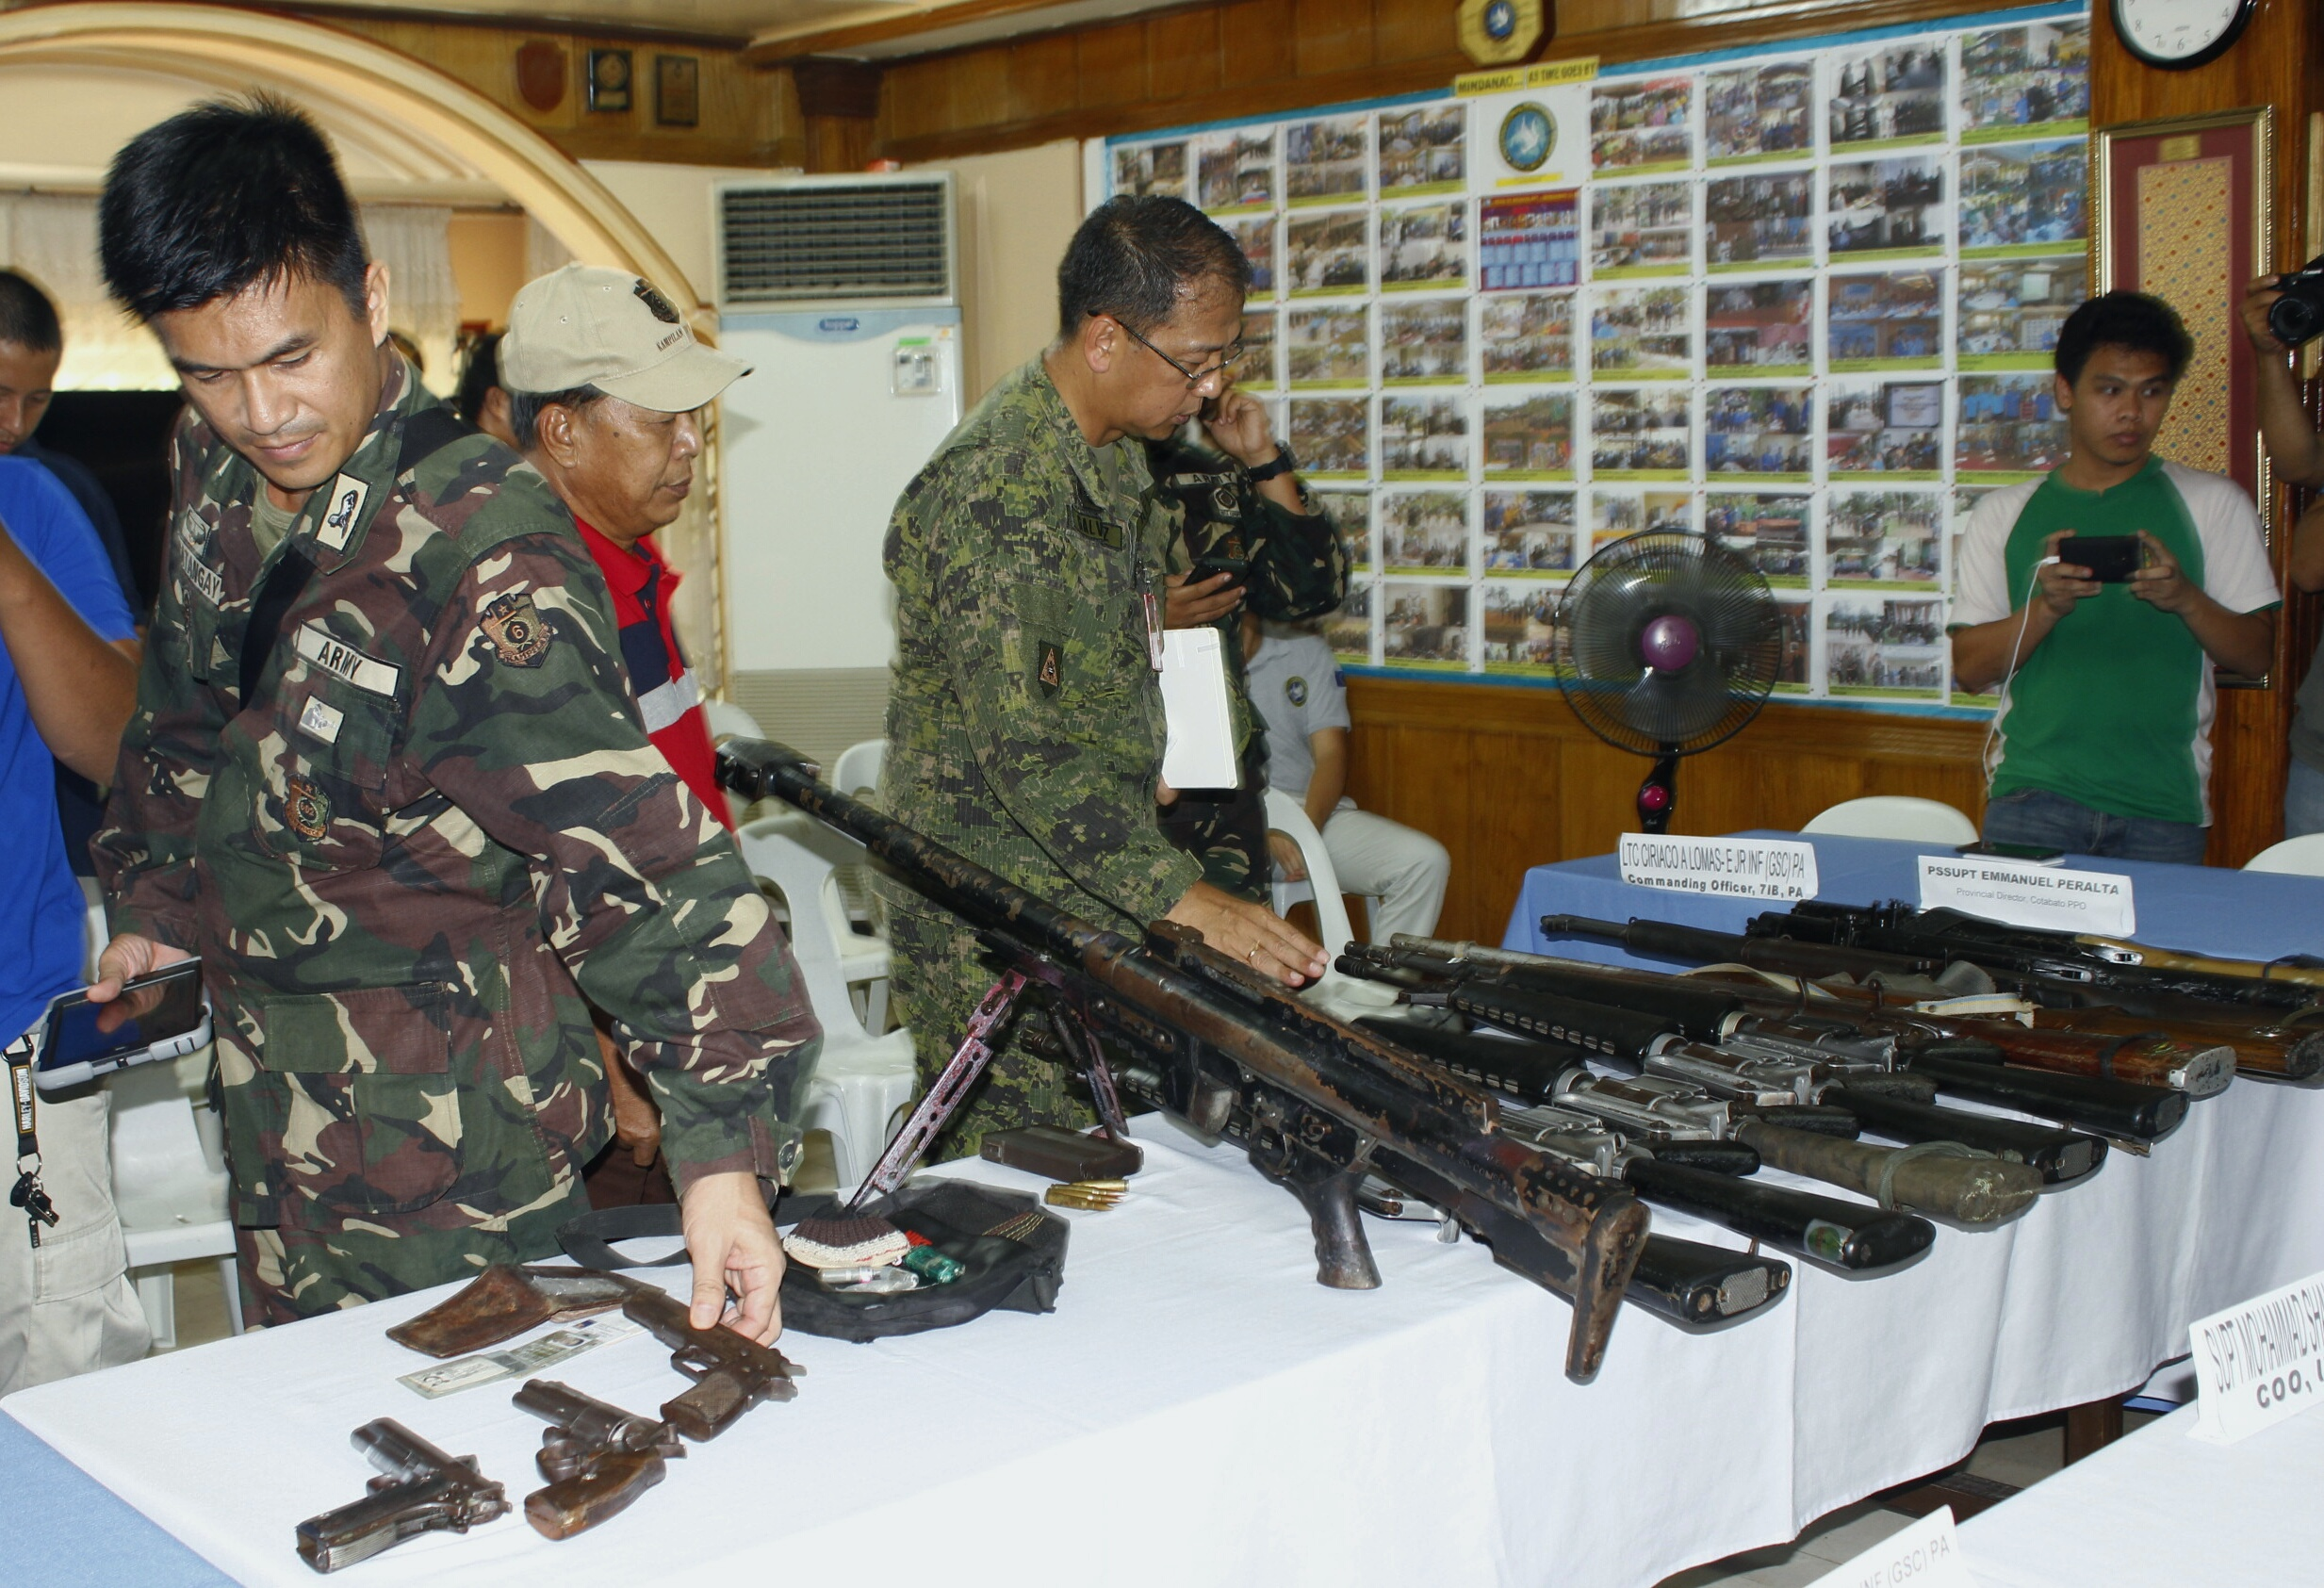 JOINT OPERATION. Authorities present firearms recovered during a joint anti-drug operation by the government and the MILF. All photos from the Office of the Presidential Adviser on the Peace Process